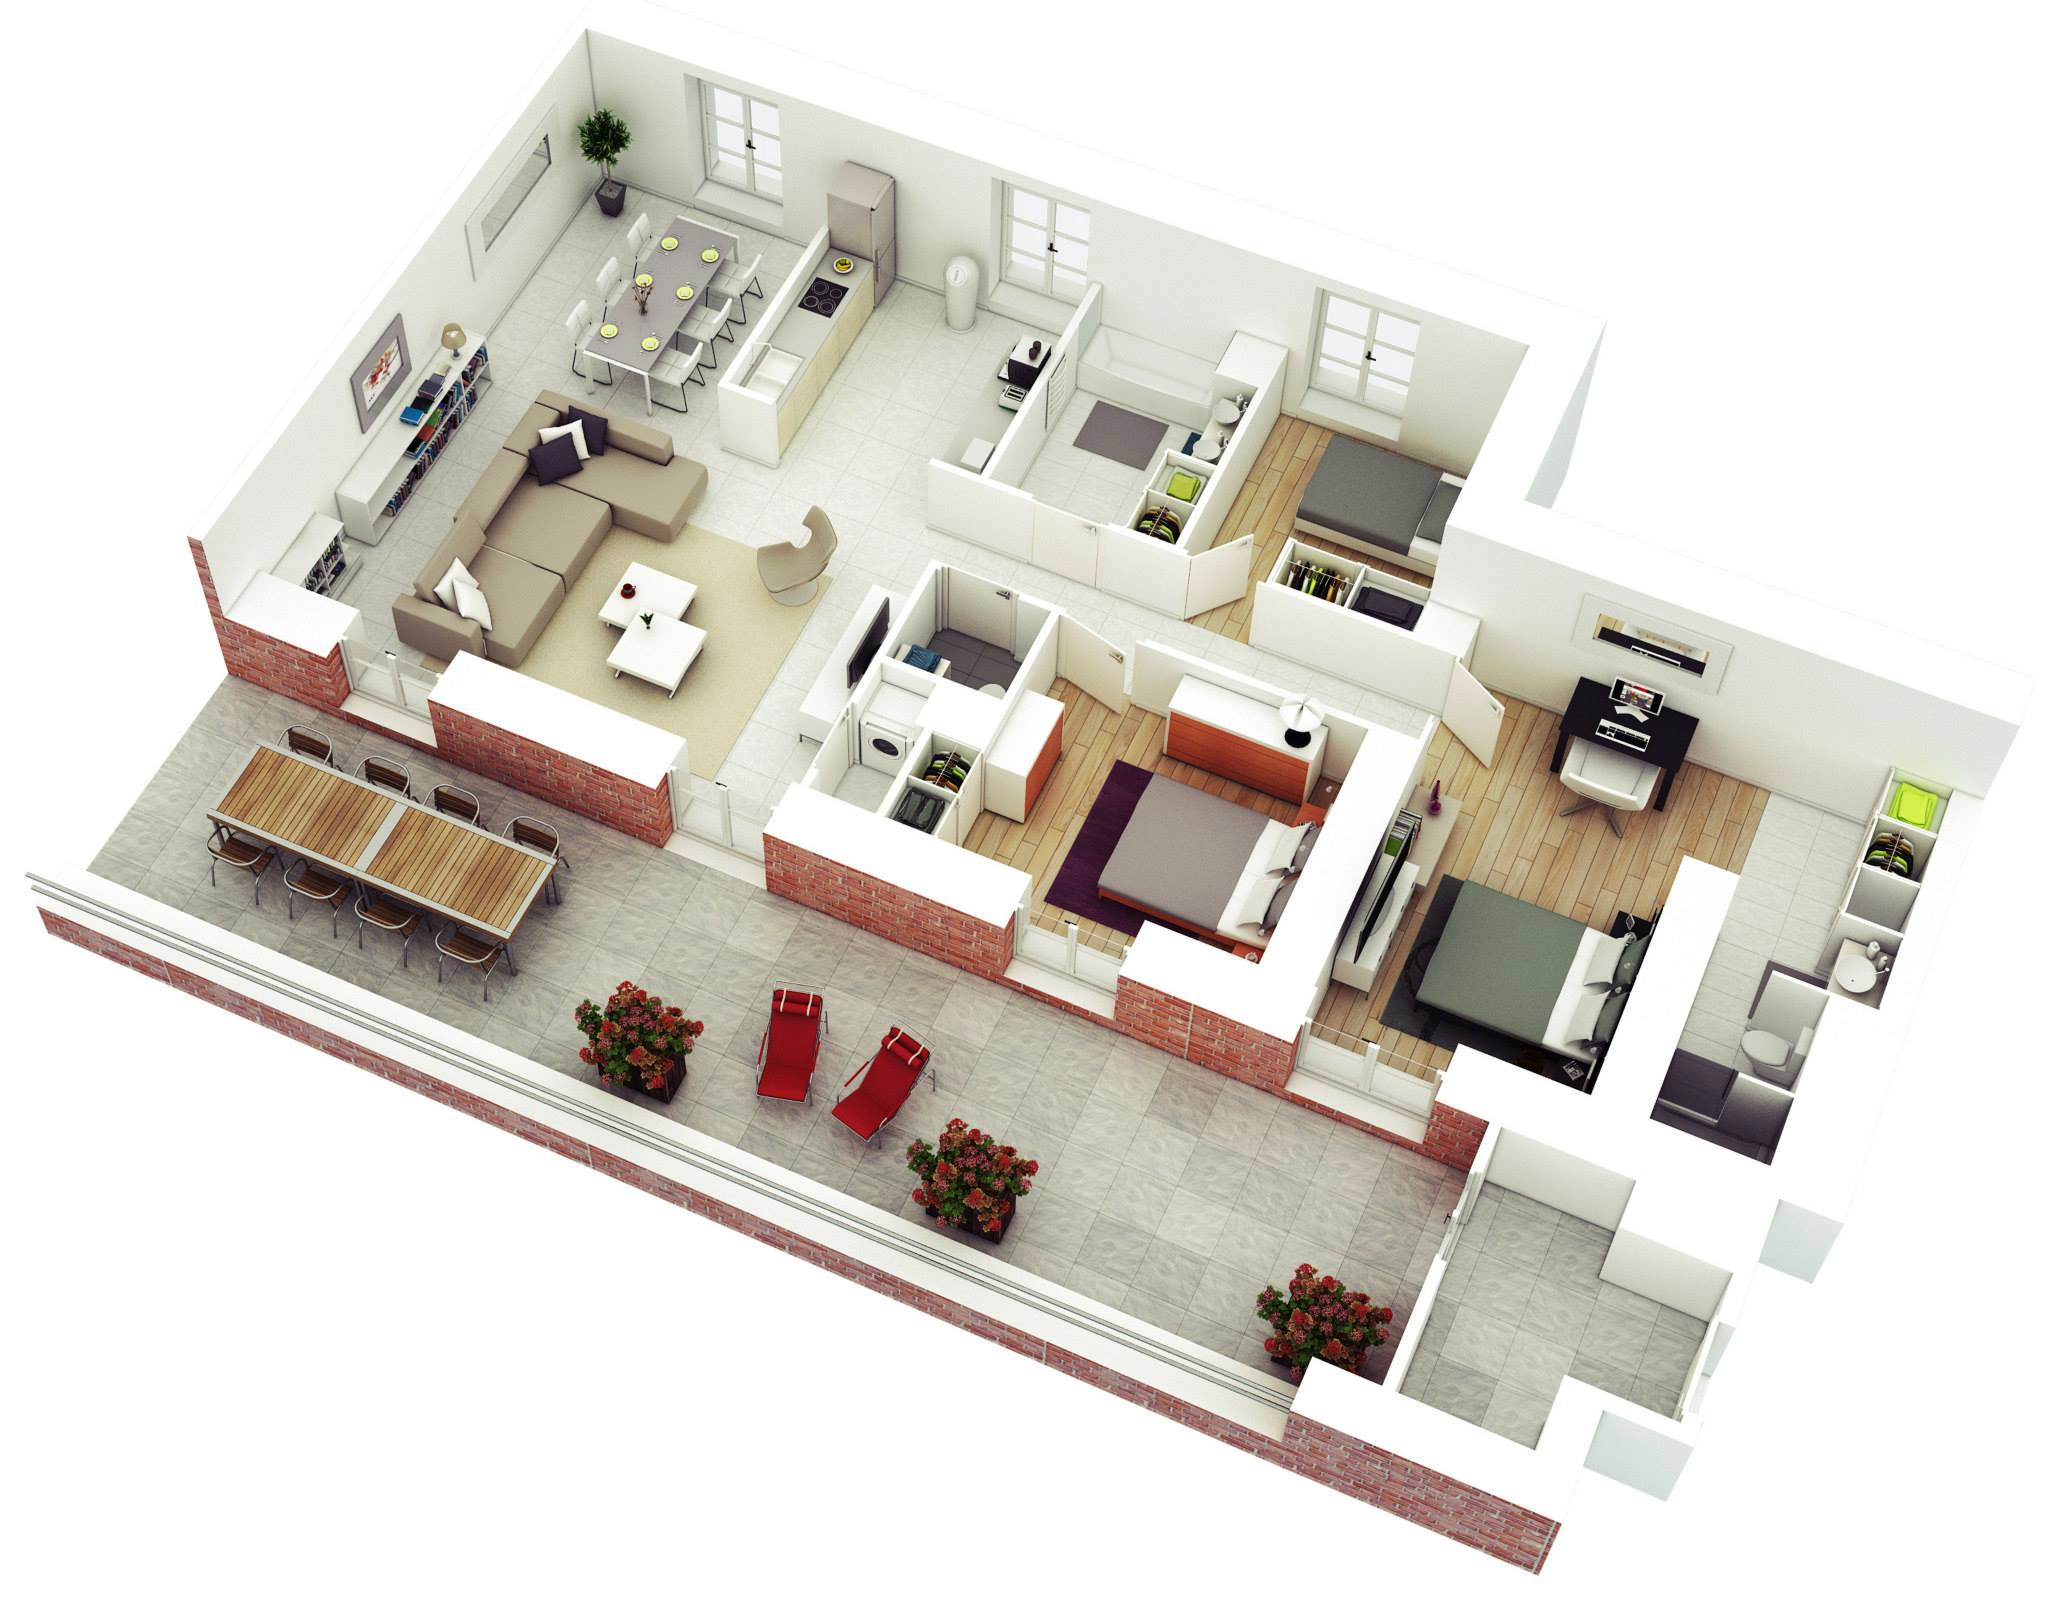 3 bedroom home design plans.  25 More 3 Bedroom 3D Floor Plans